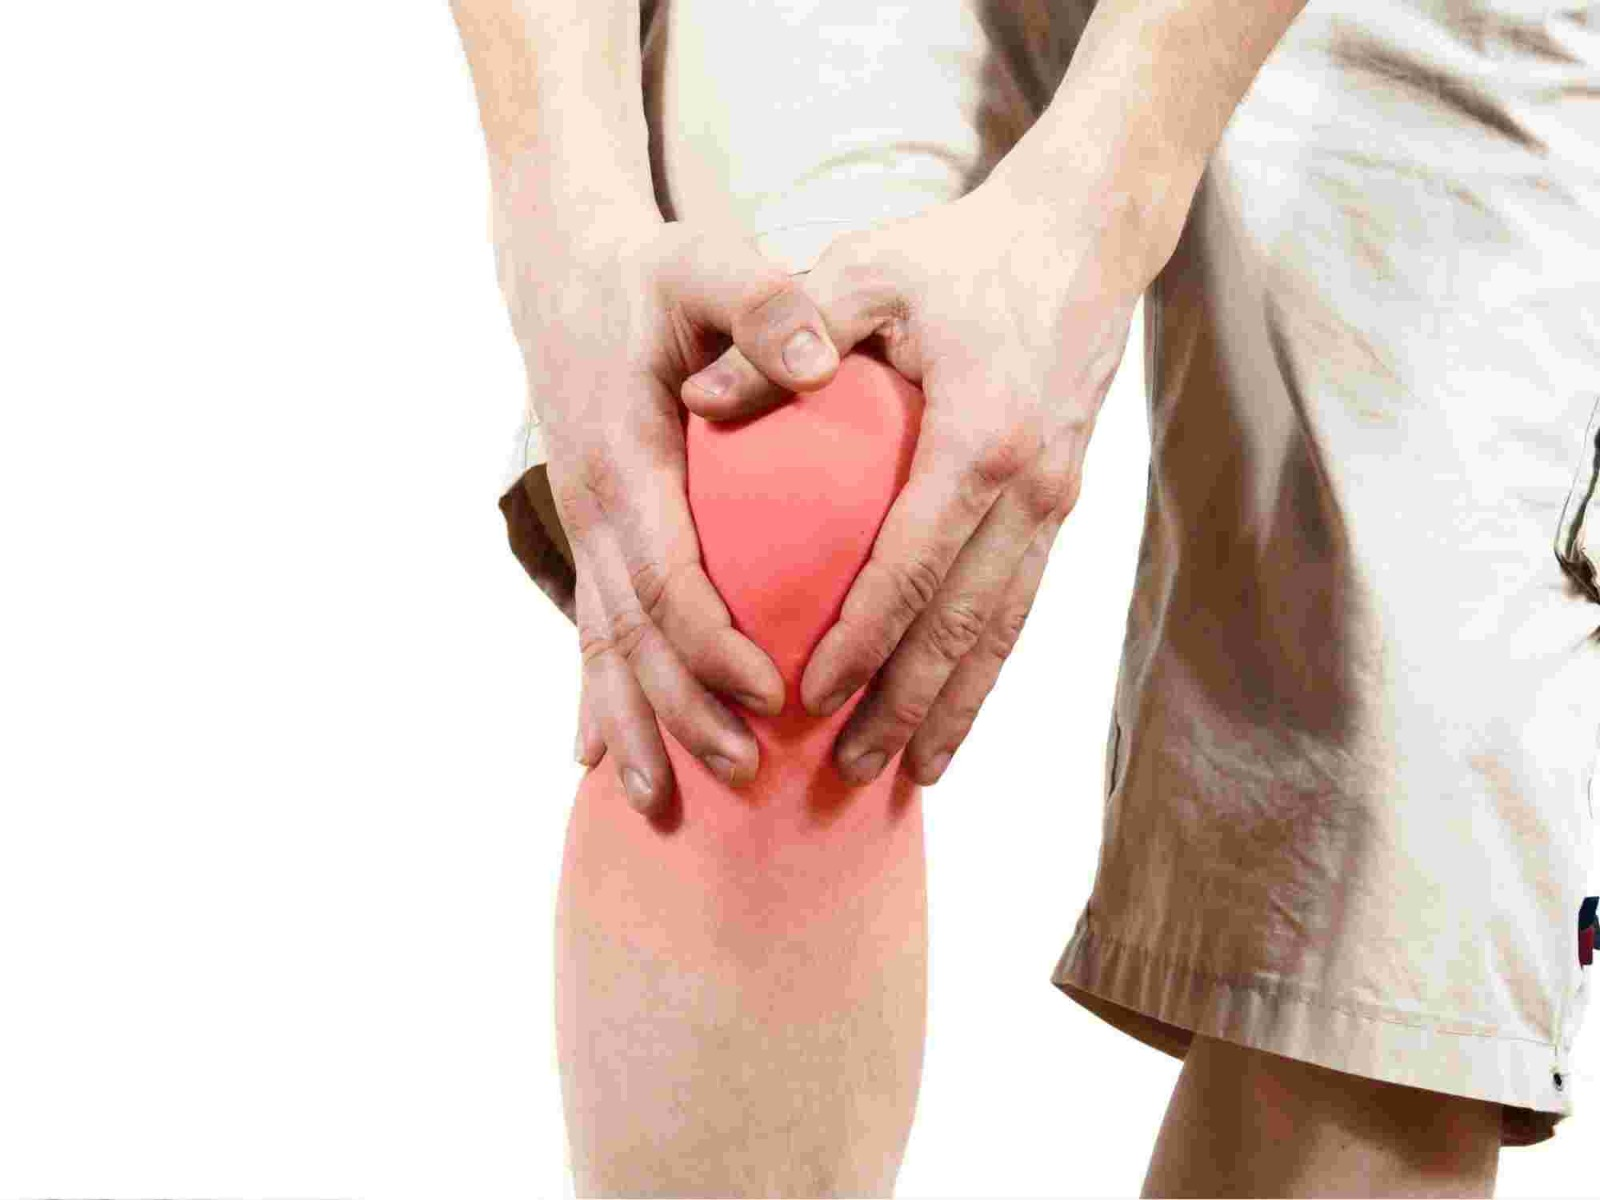 Inflamed arthritis knee